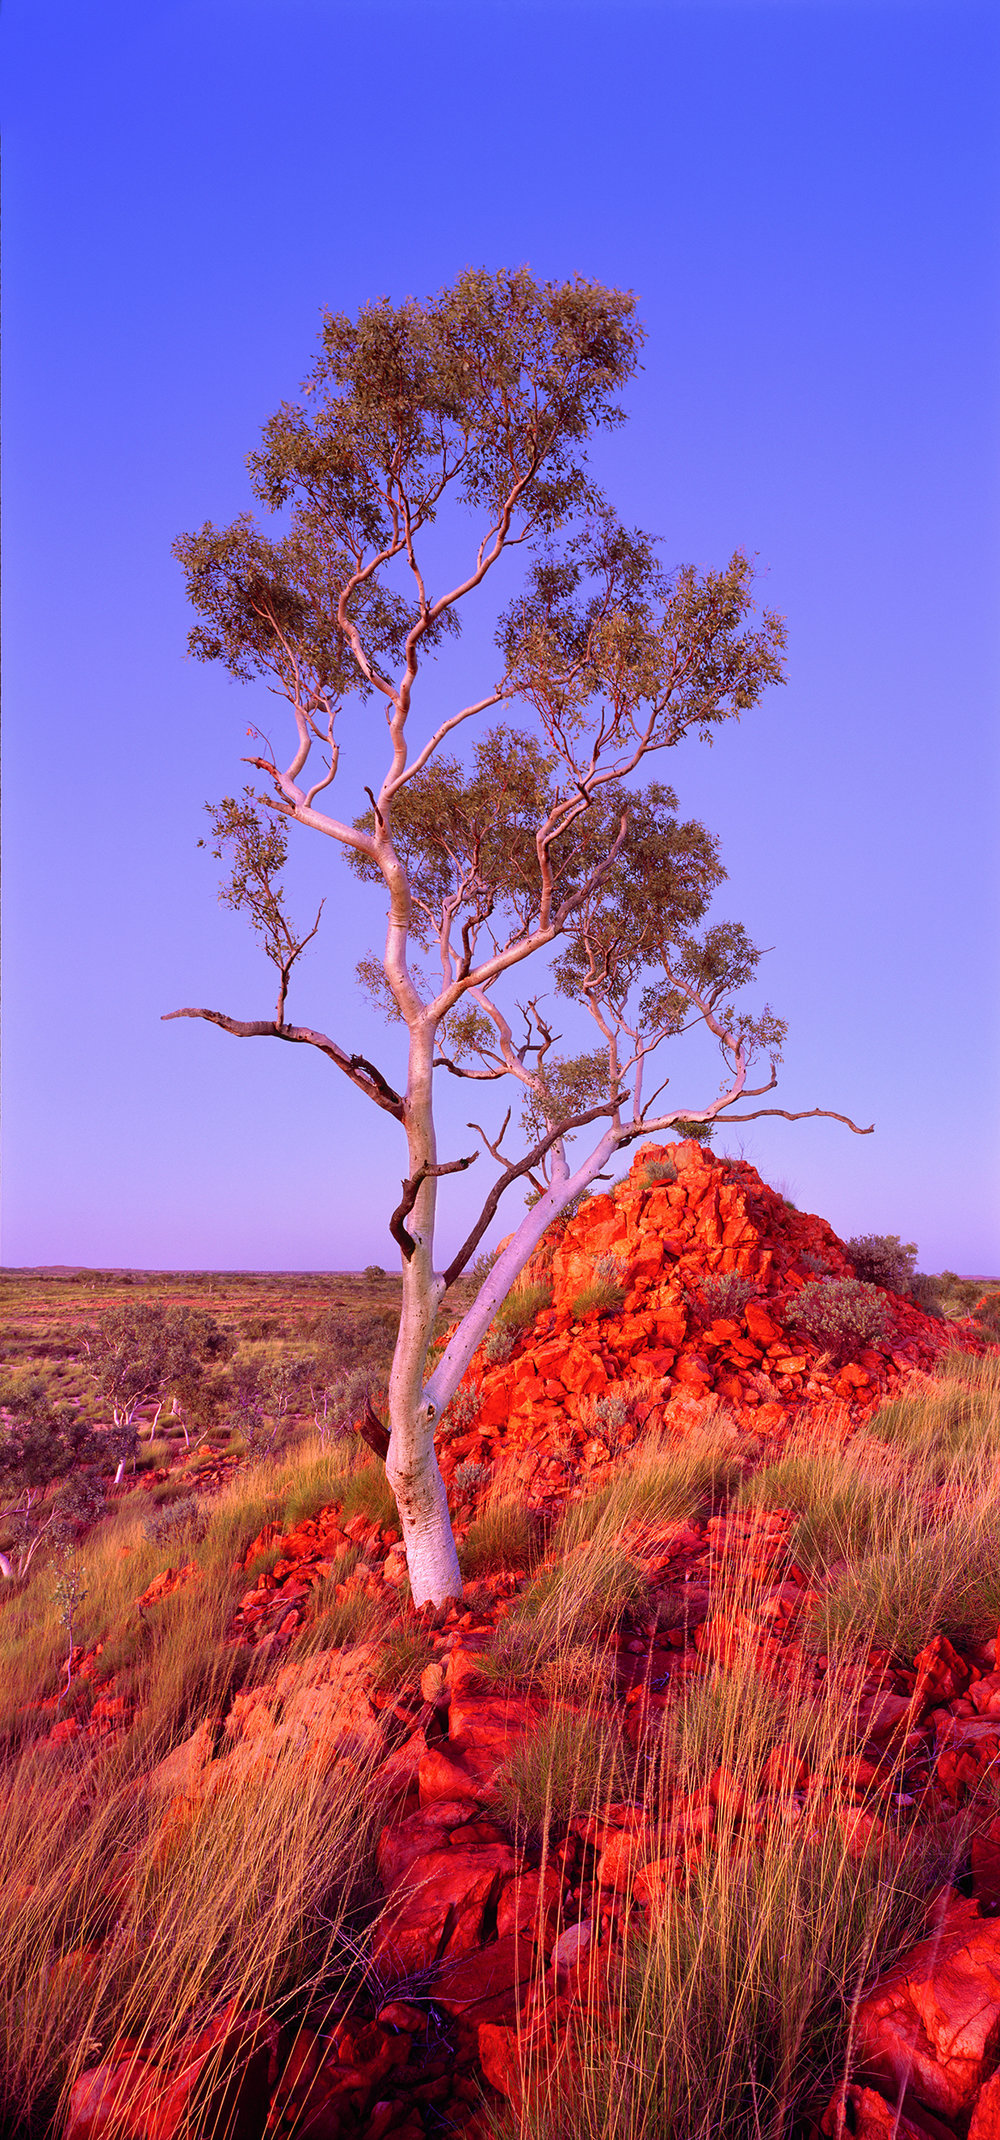 Snappy Gum, Rudall River National Park, Little Sandy Desert, Pilbara, Western Australia, 2011.  Edition of 3.